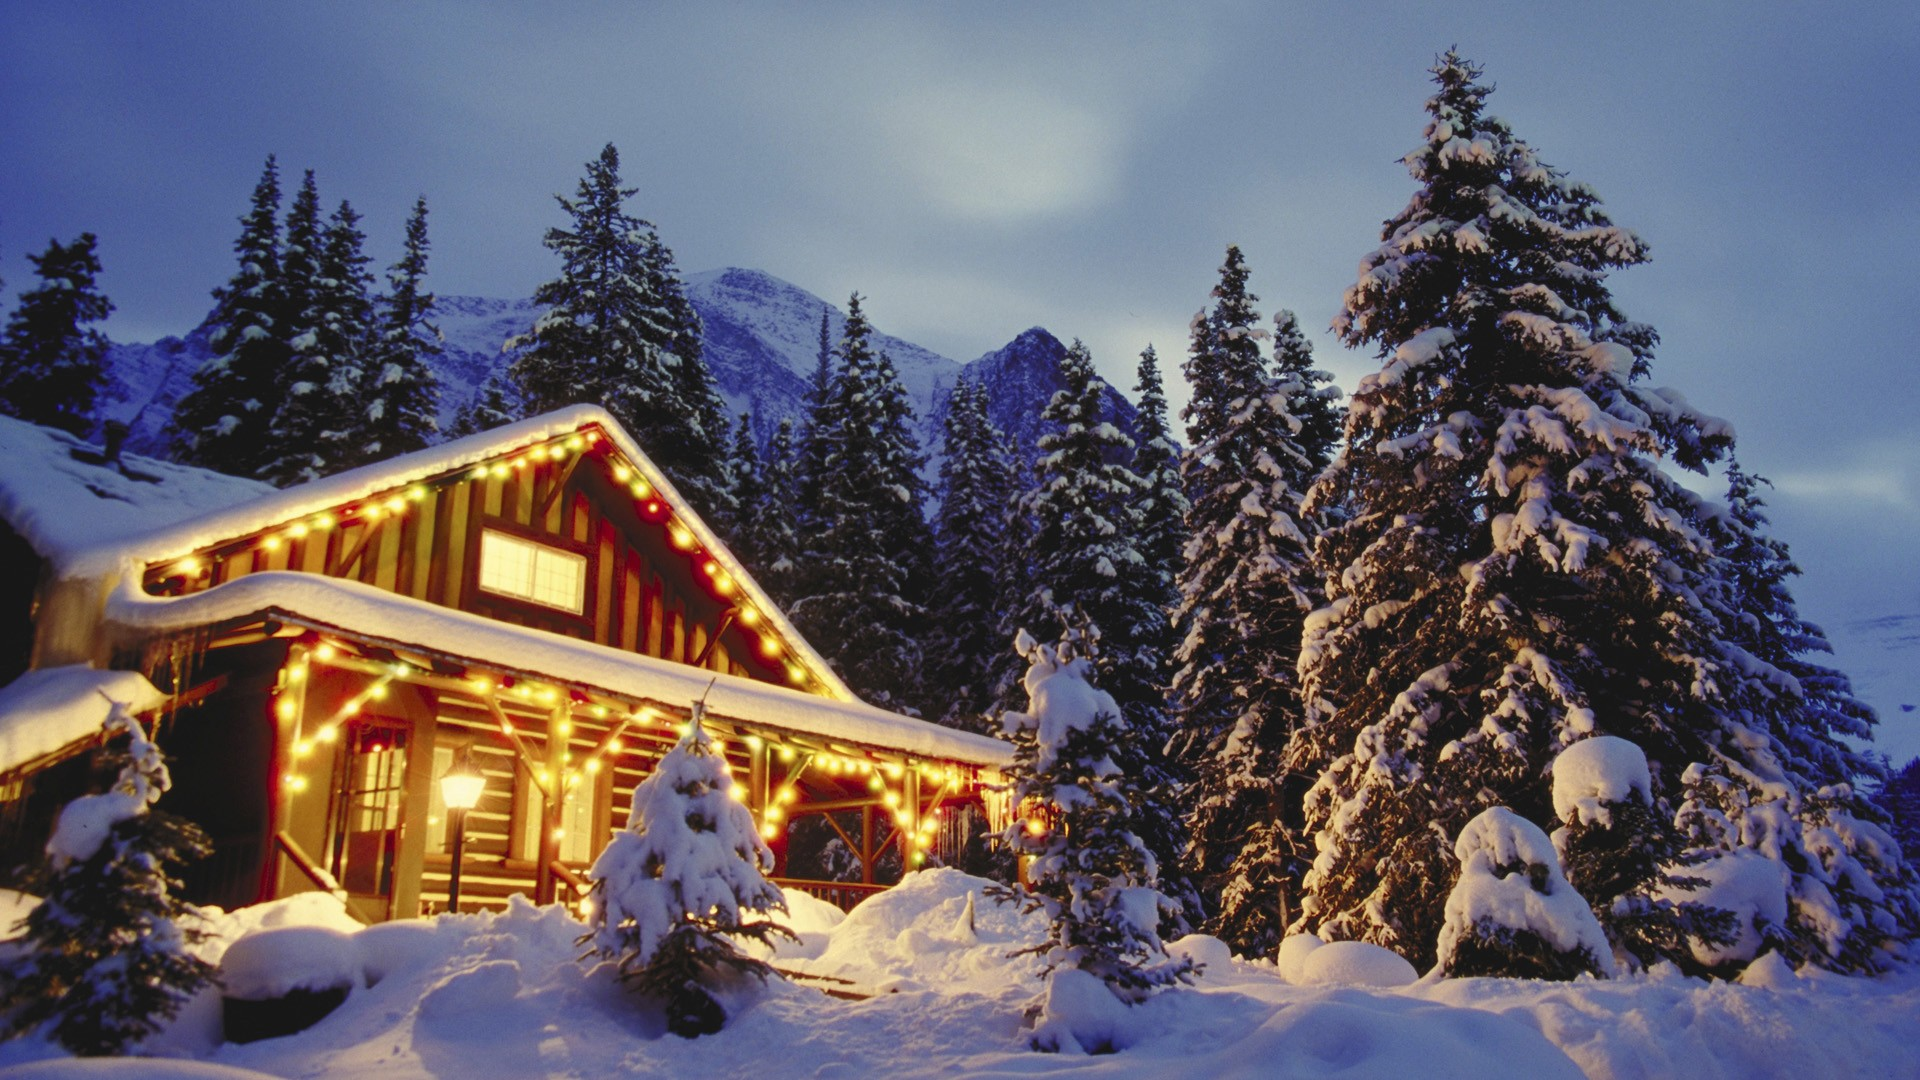 Christmas-cabin-mountain-winter-snow-holiday-wallpaper-wpc5803459